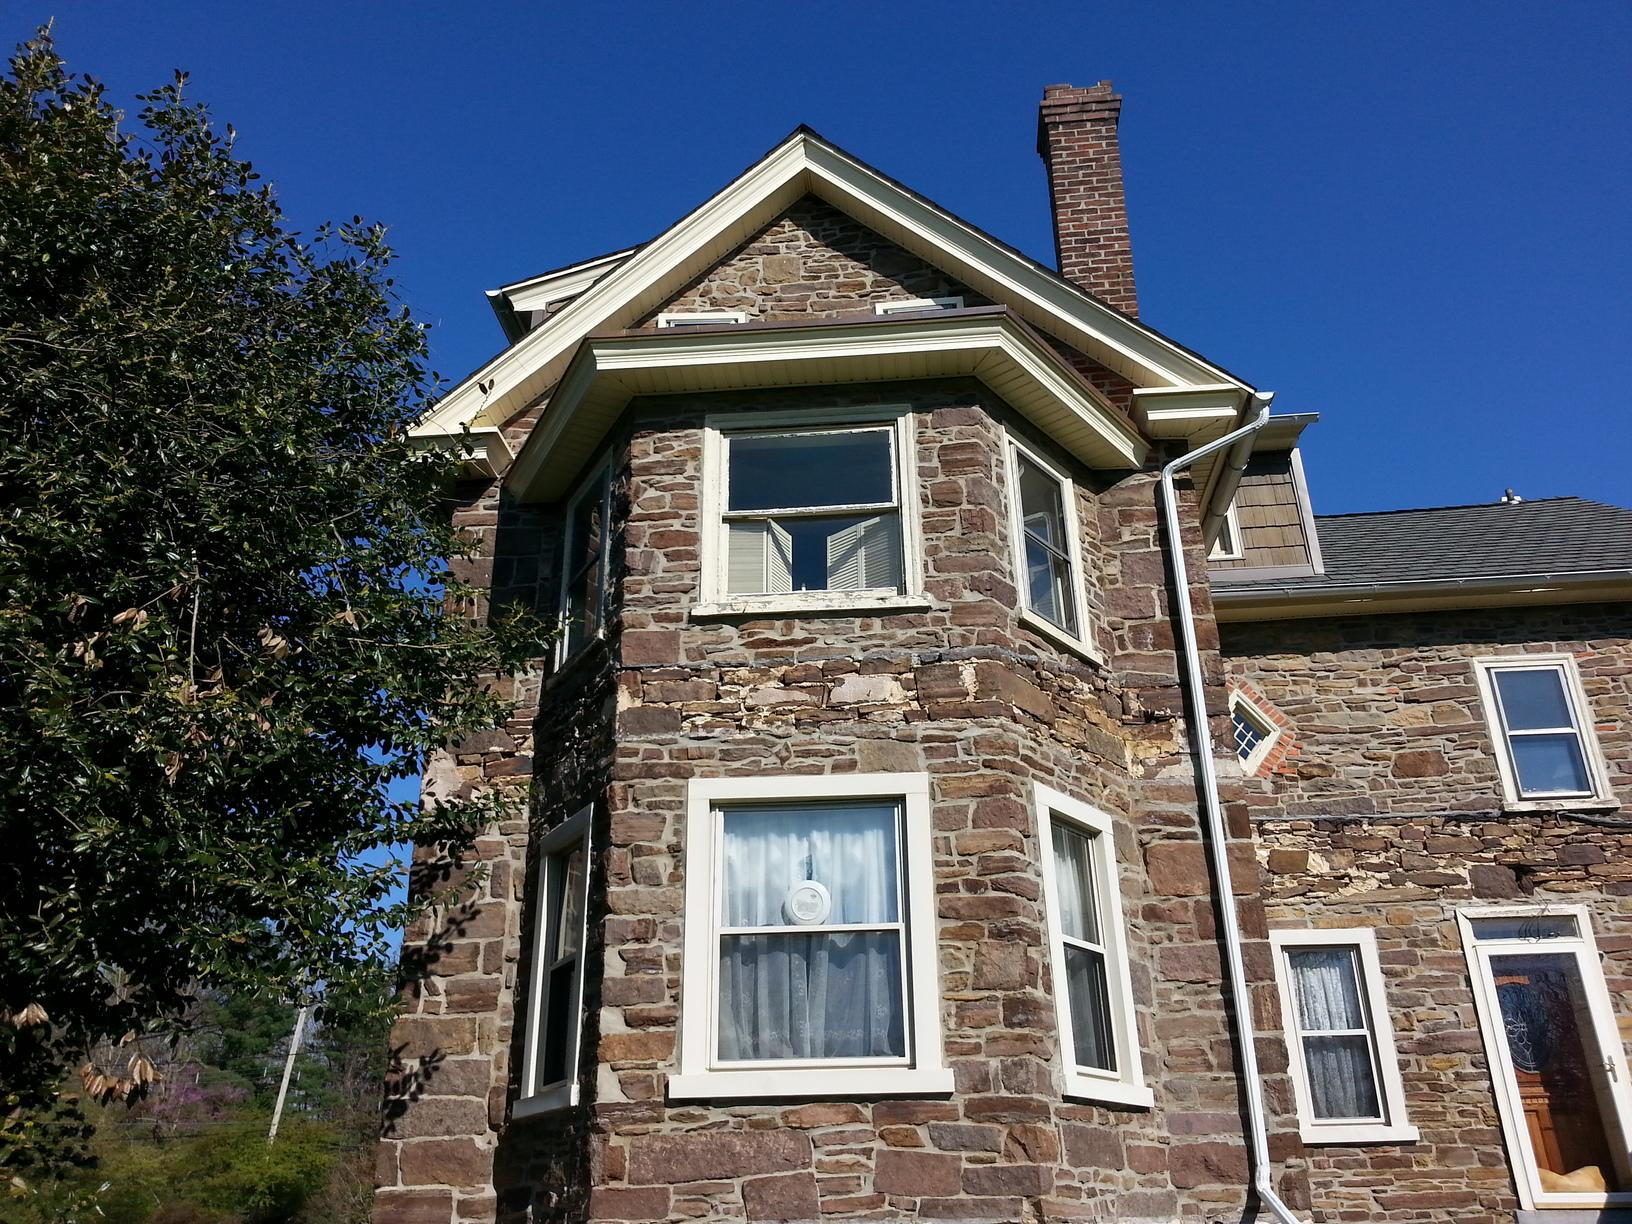 Marvin Infinity Fiberglass with Cashmere Exterior and White Interior Installation on Historic Home in Lansdale, PA - Before Photo